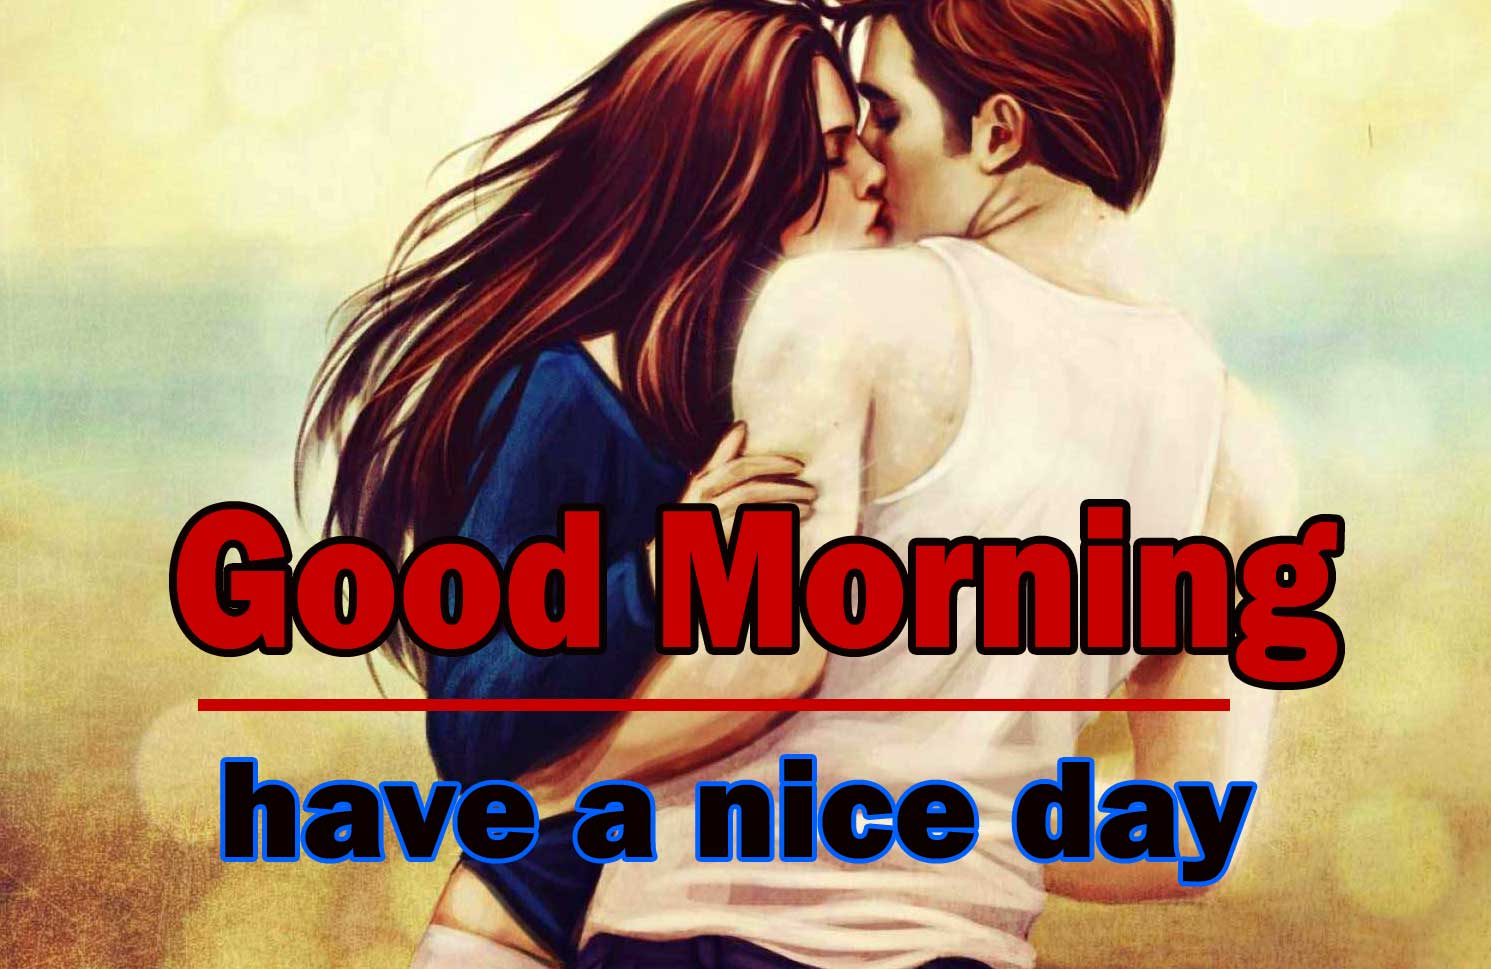 Romantic Love Couple Good Morning 4